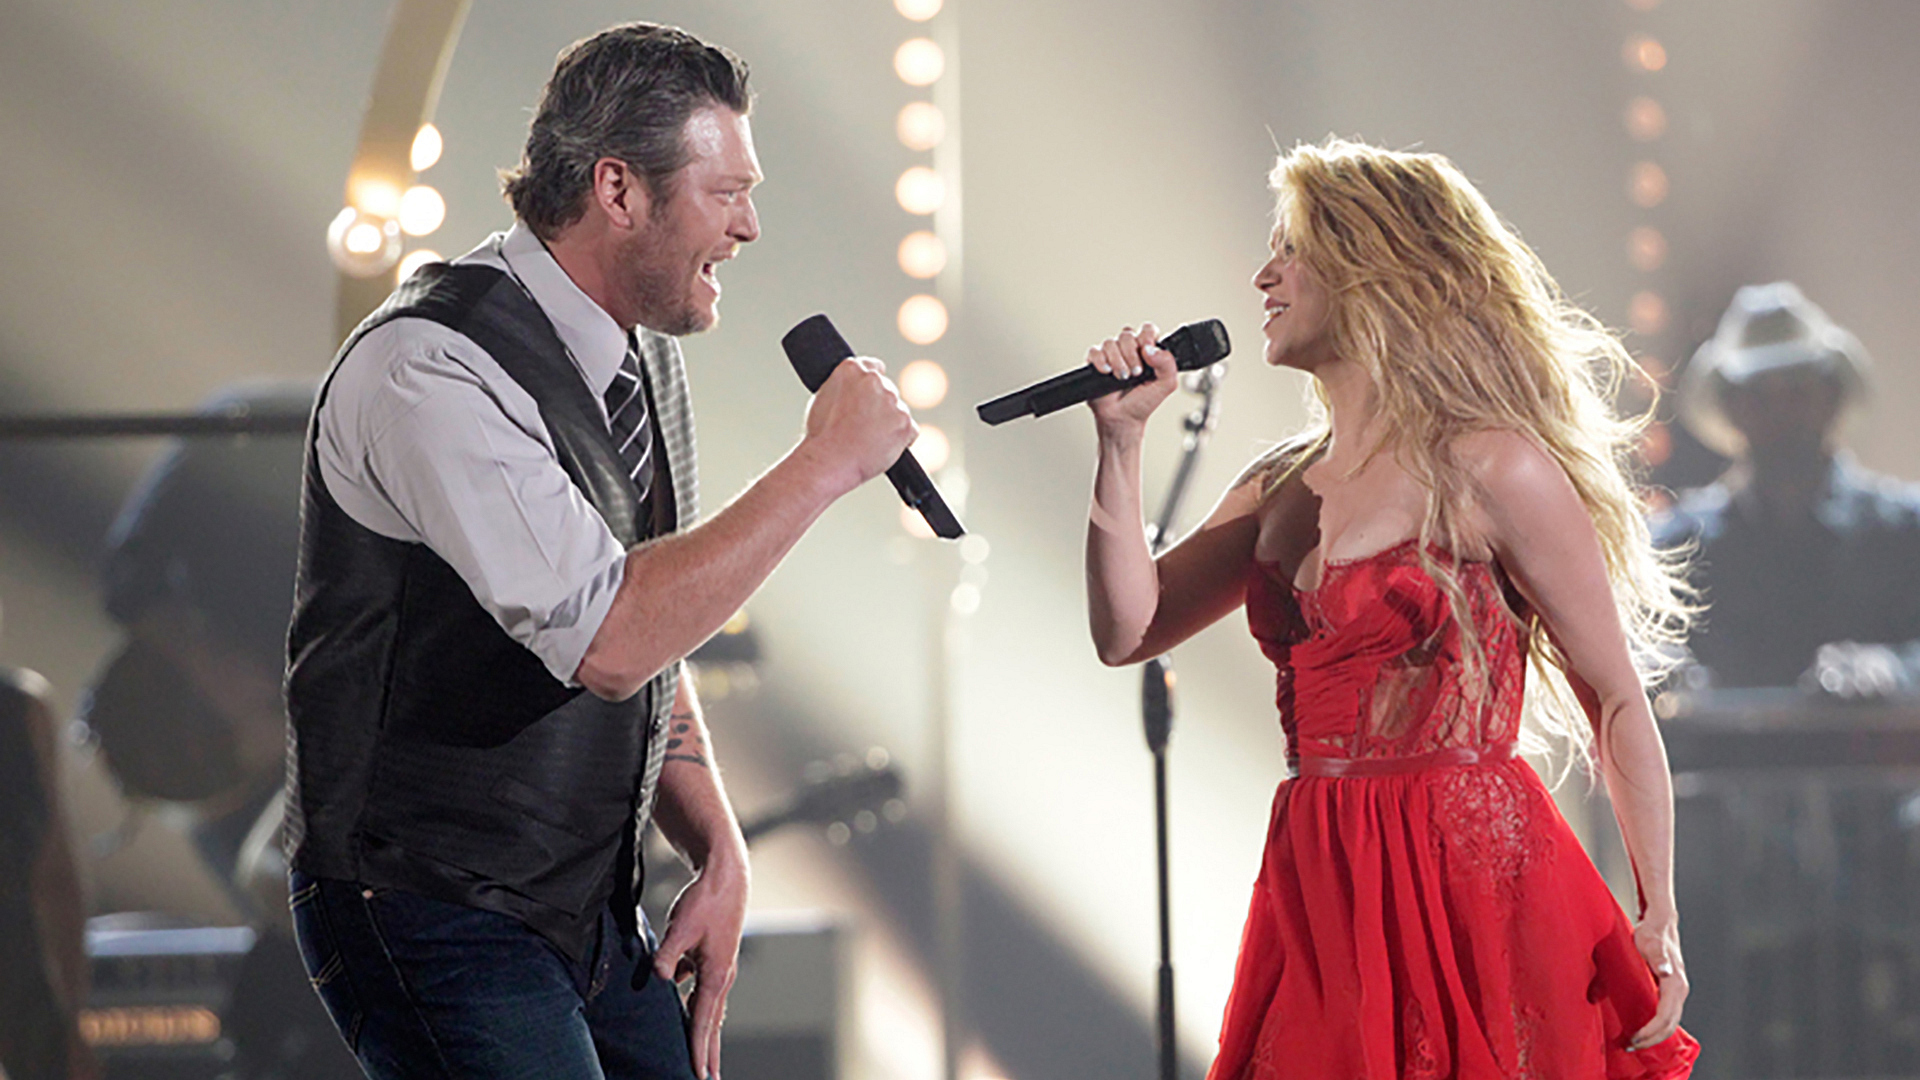 """11. Blake Shelton and Shakira perform """"Medicine"""" at the 49th ACM Awards in 2014."""